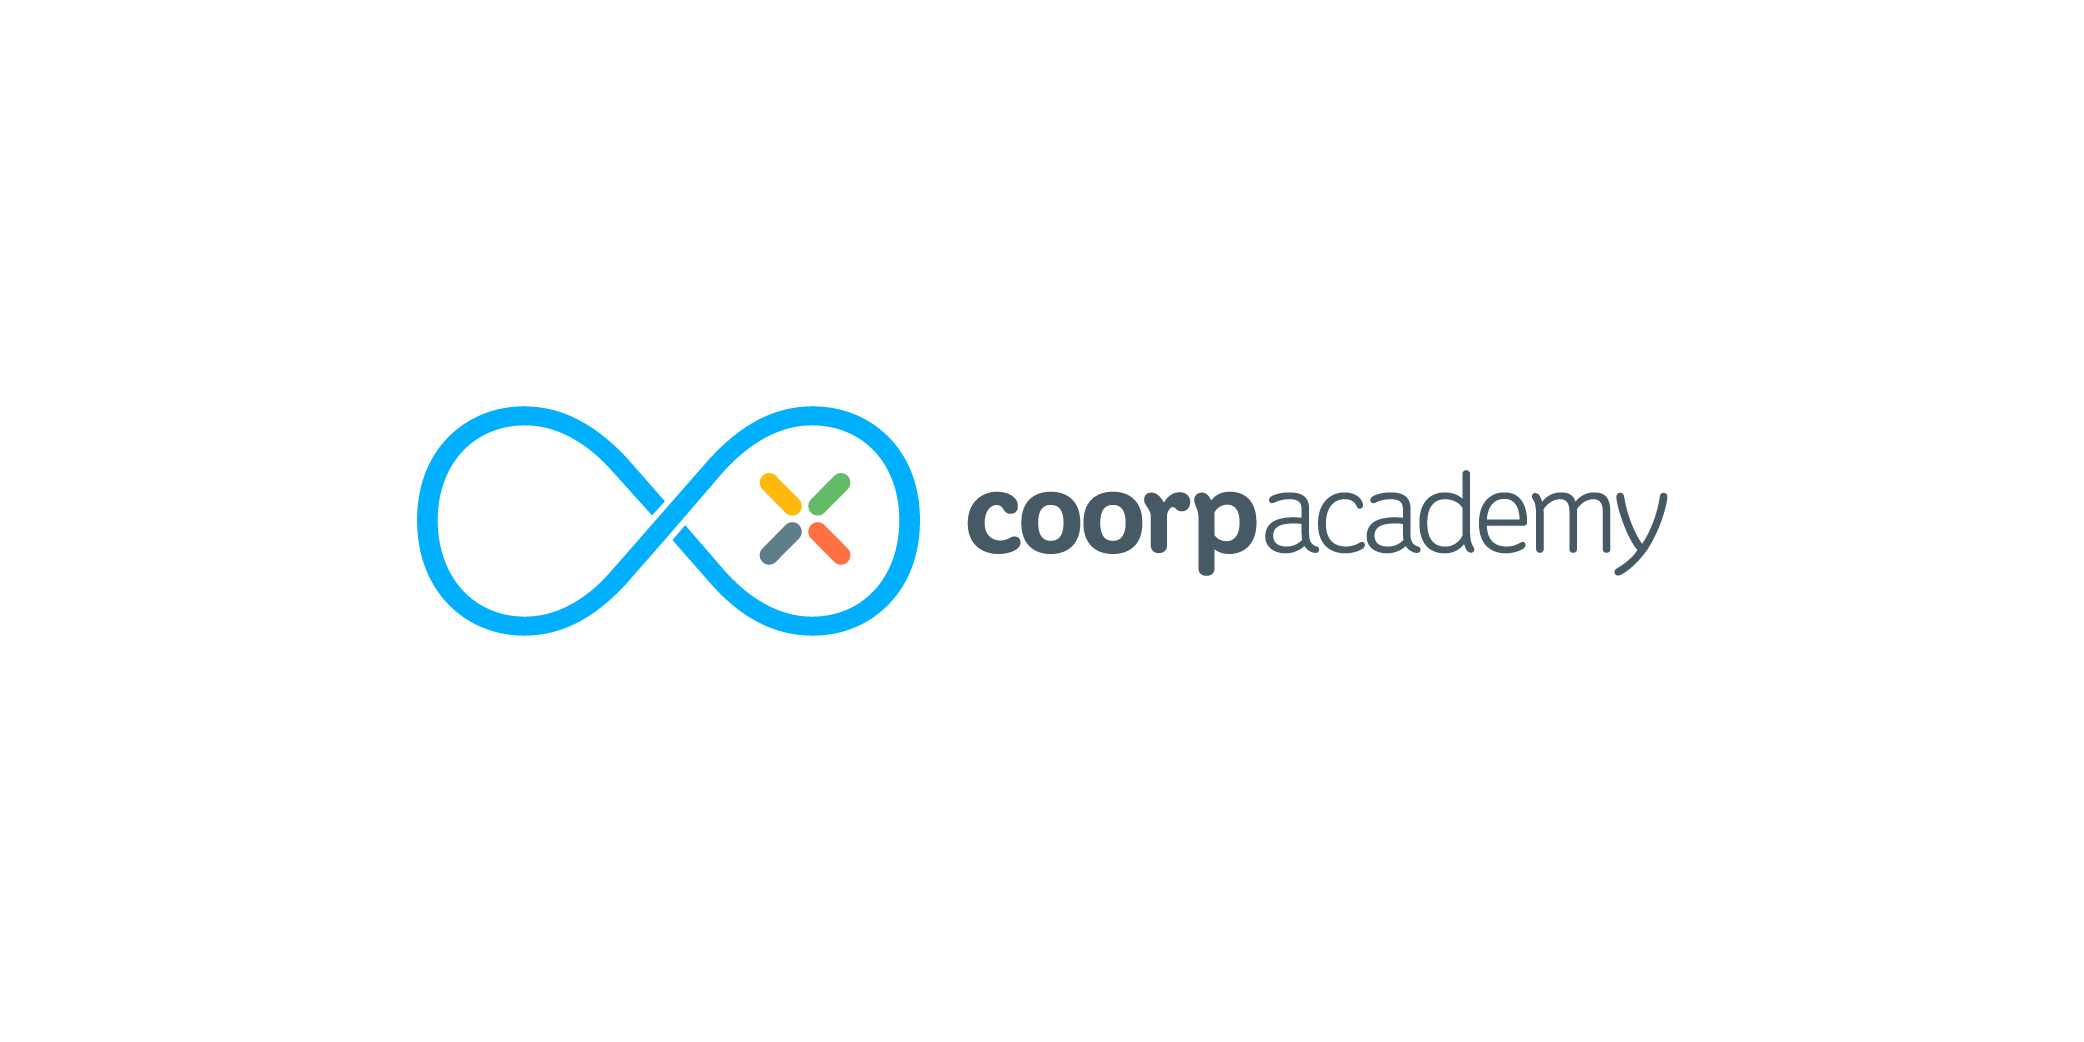 COORP ACADEMY